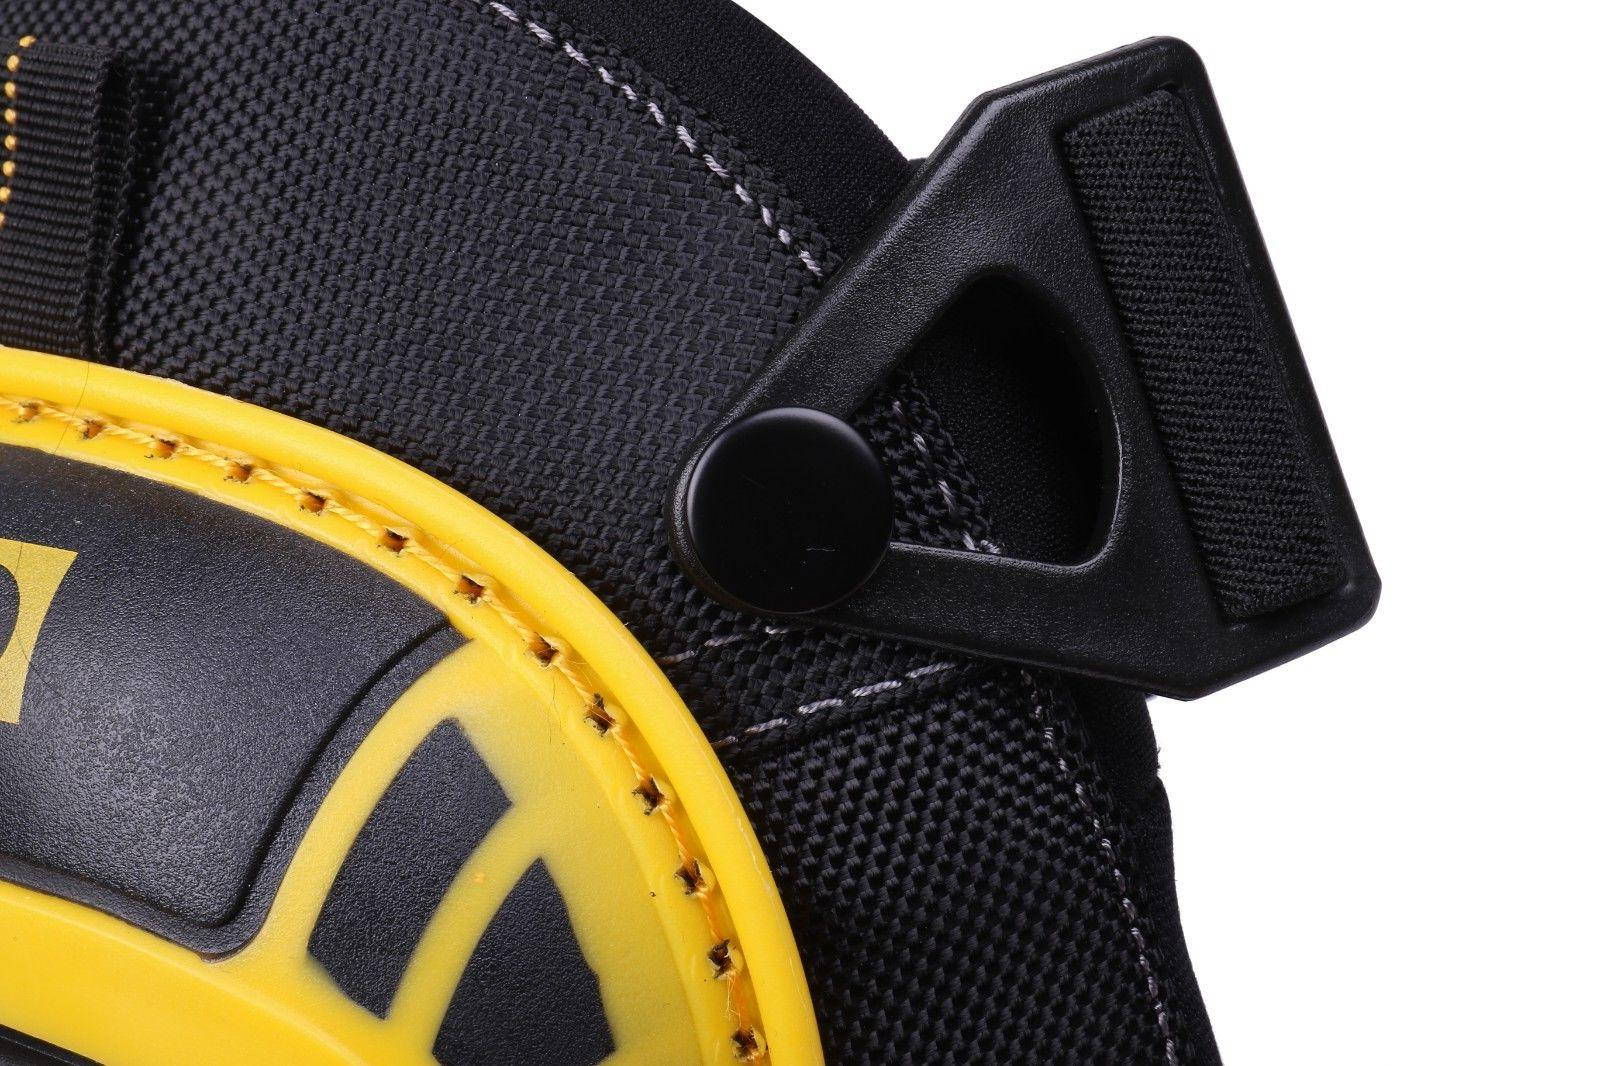 Knee for Construction Pads Tools -Includes